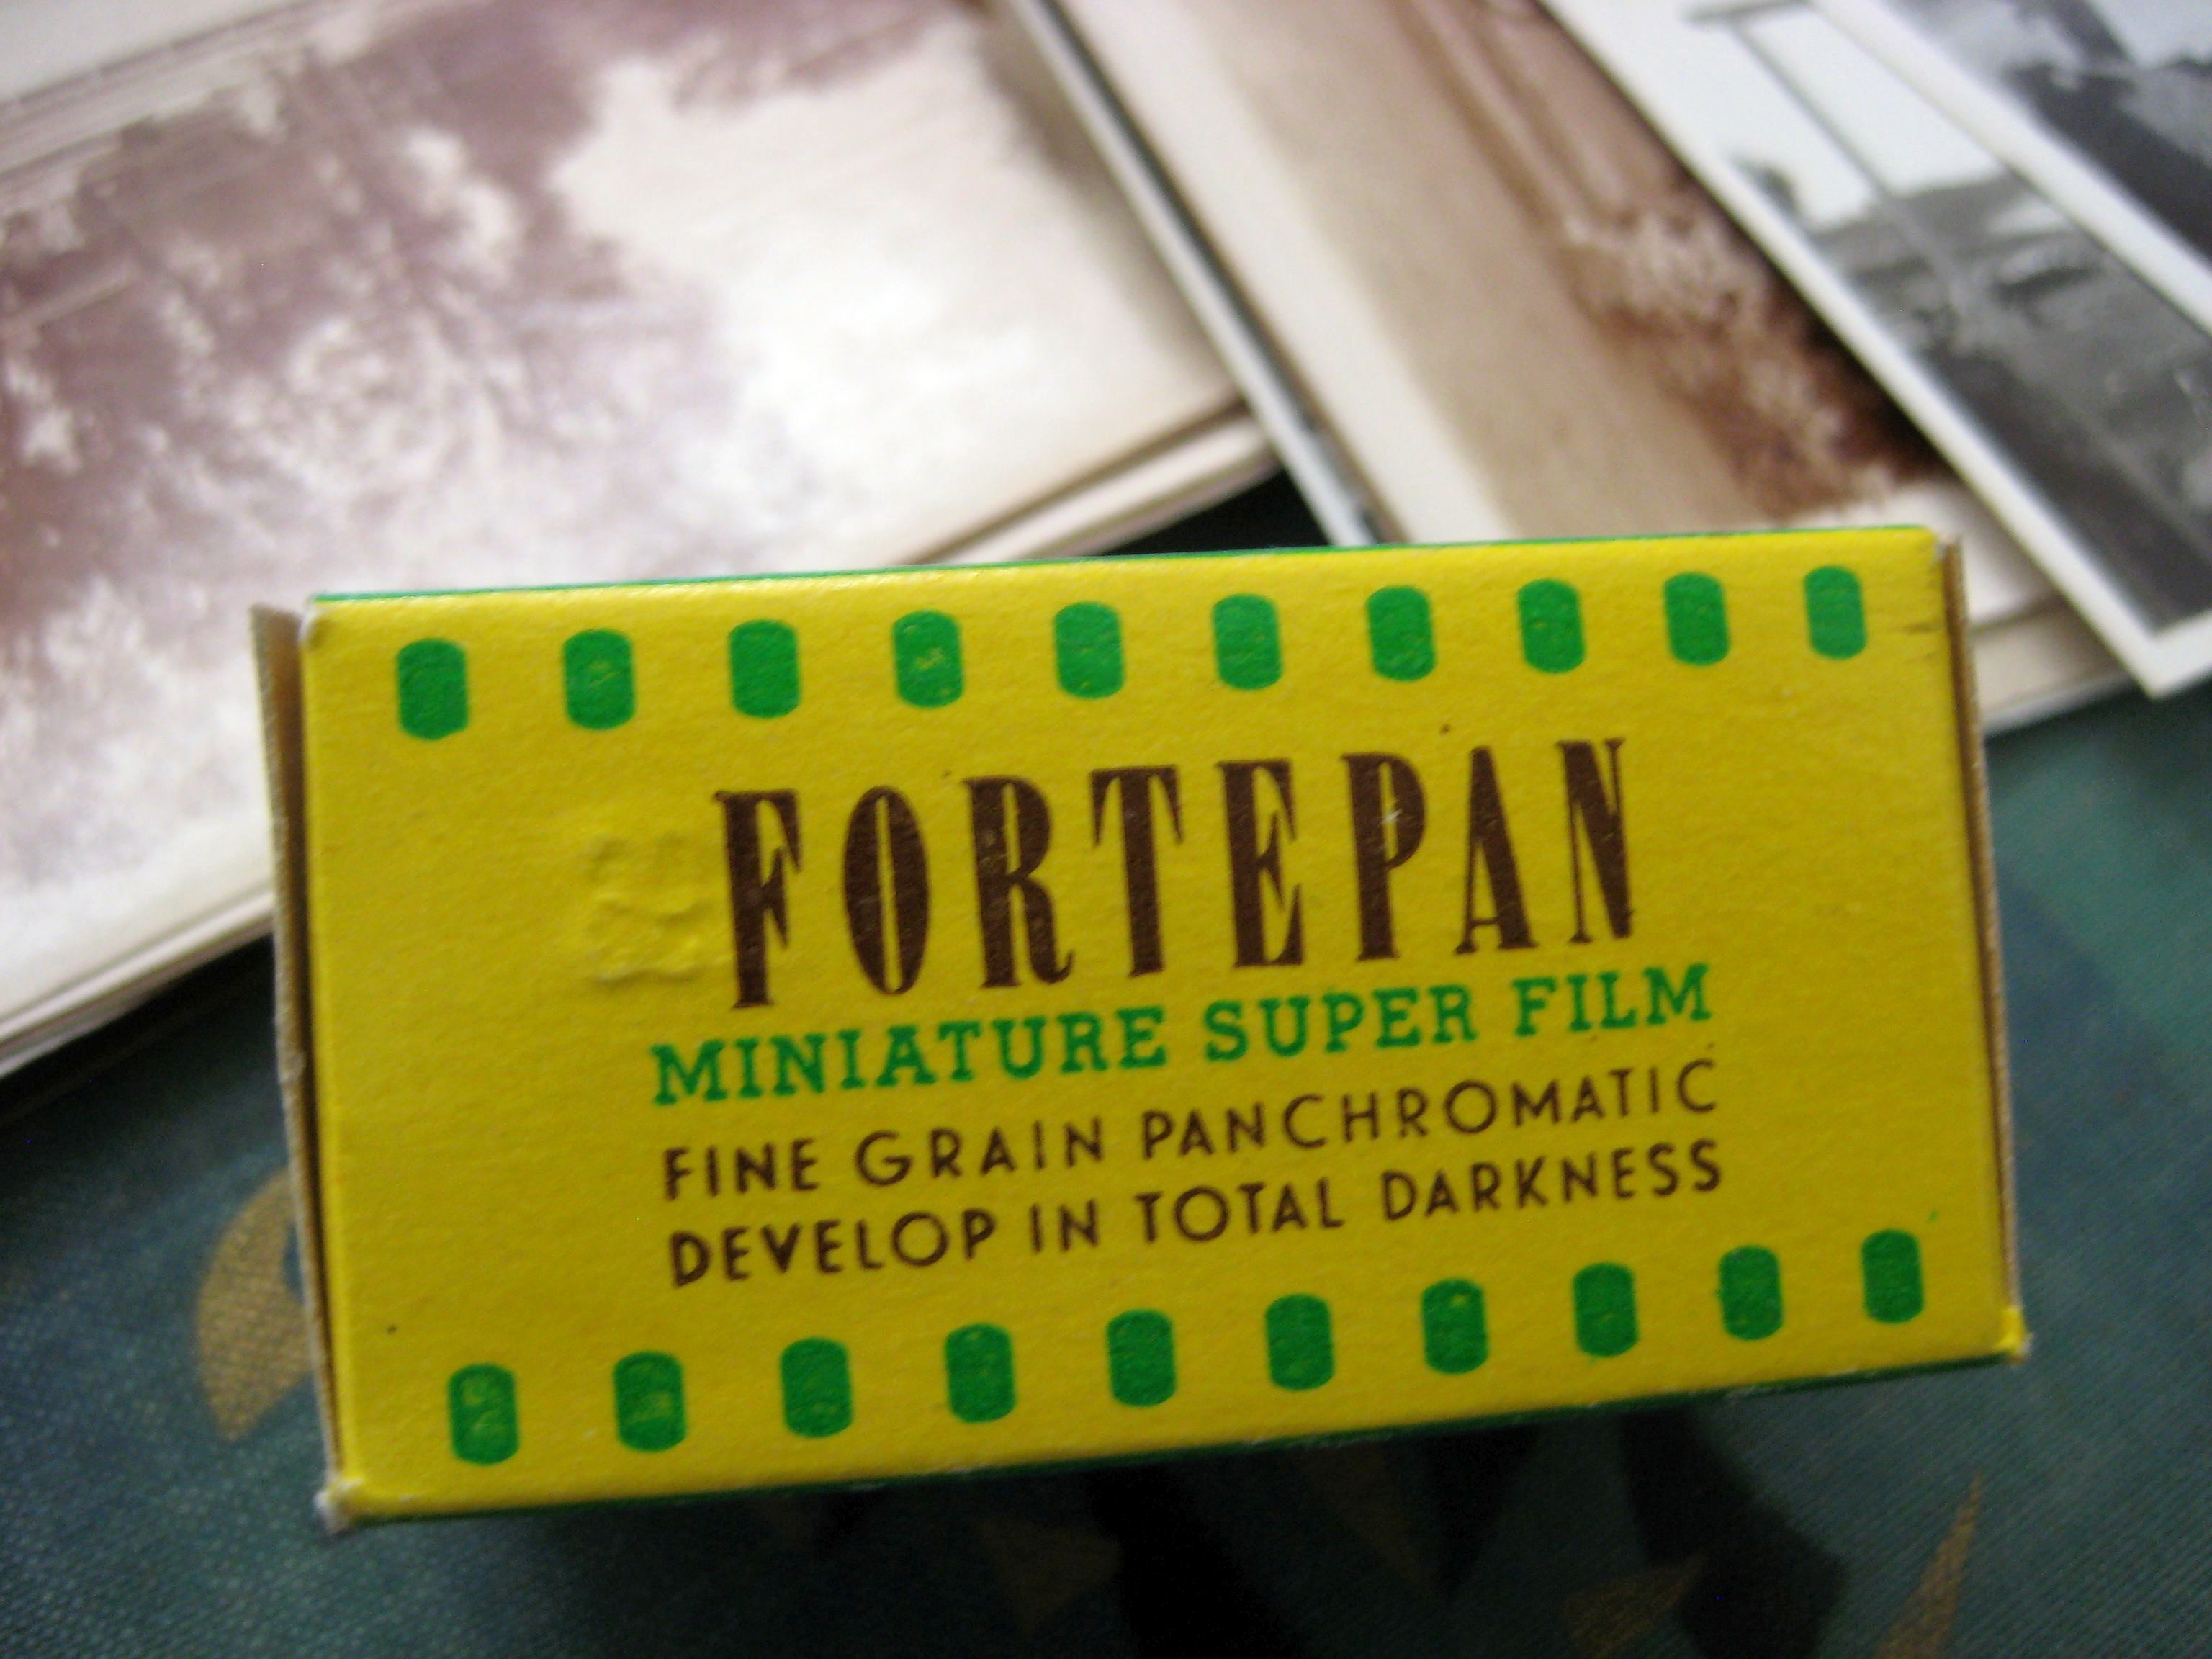 Fortepan film, product of Forte factory, photo by Tamás Scheibner